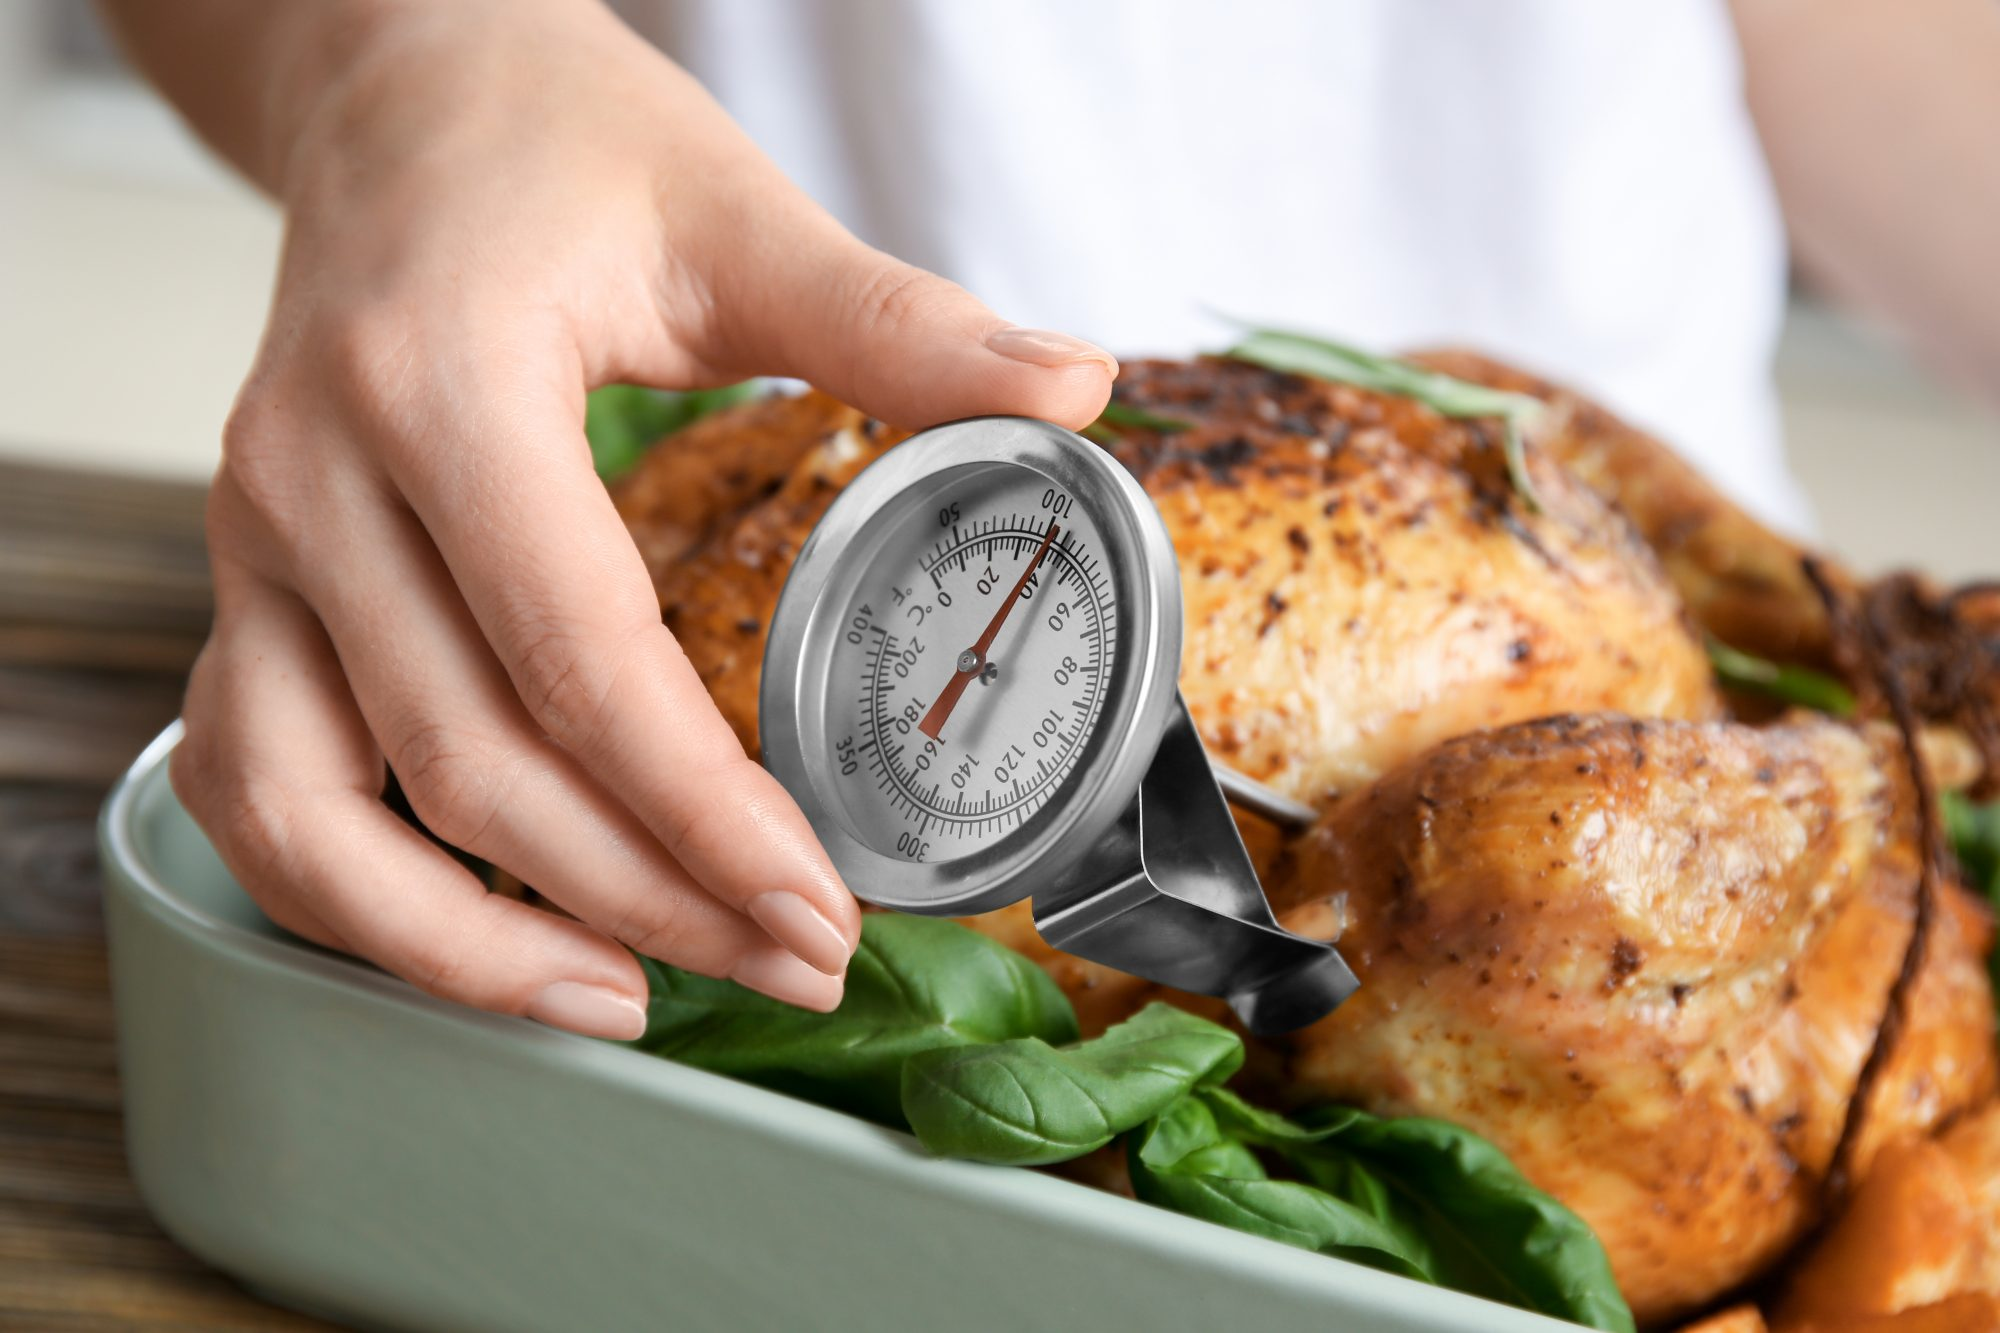 Meat temperature guide: woman measuring temperature of whole roasted turkey with meat thermometer